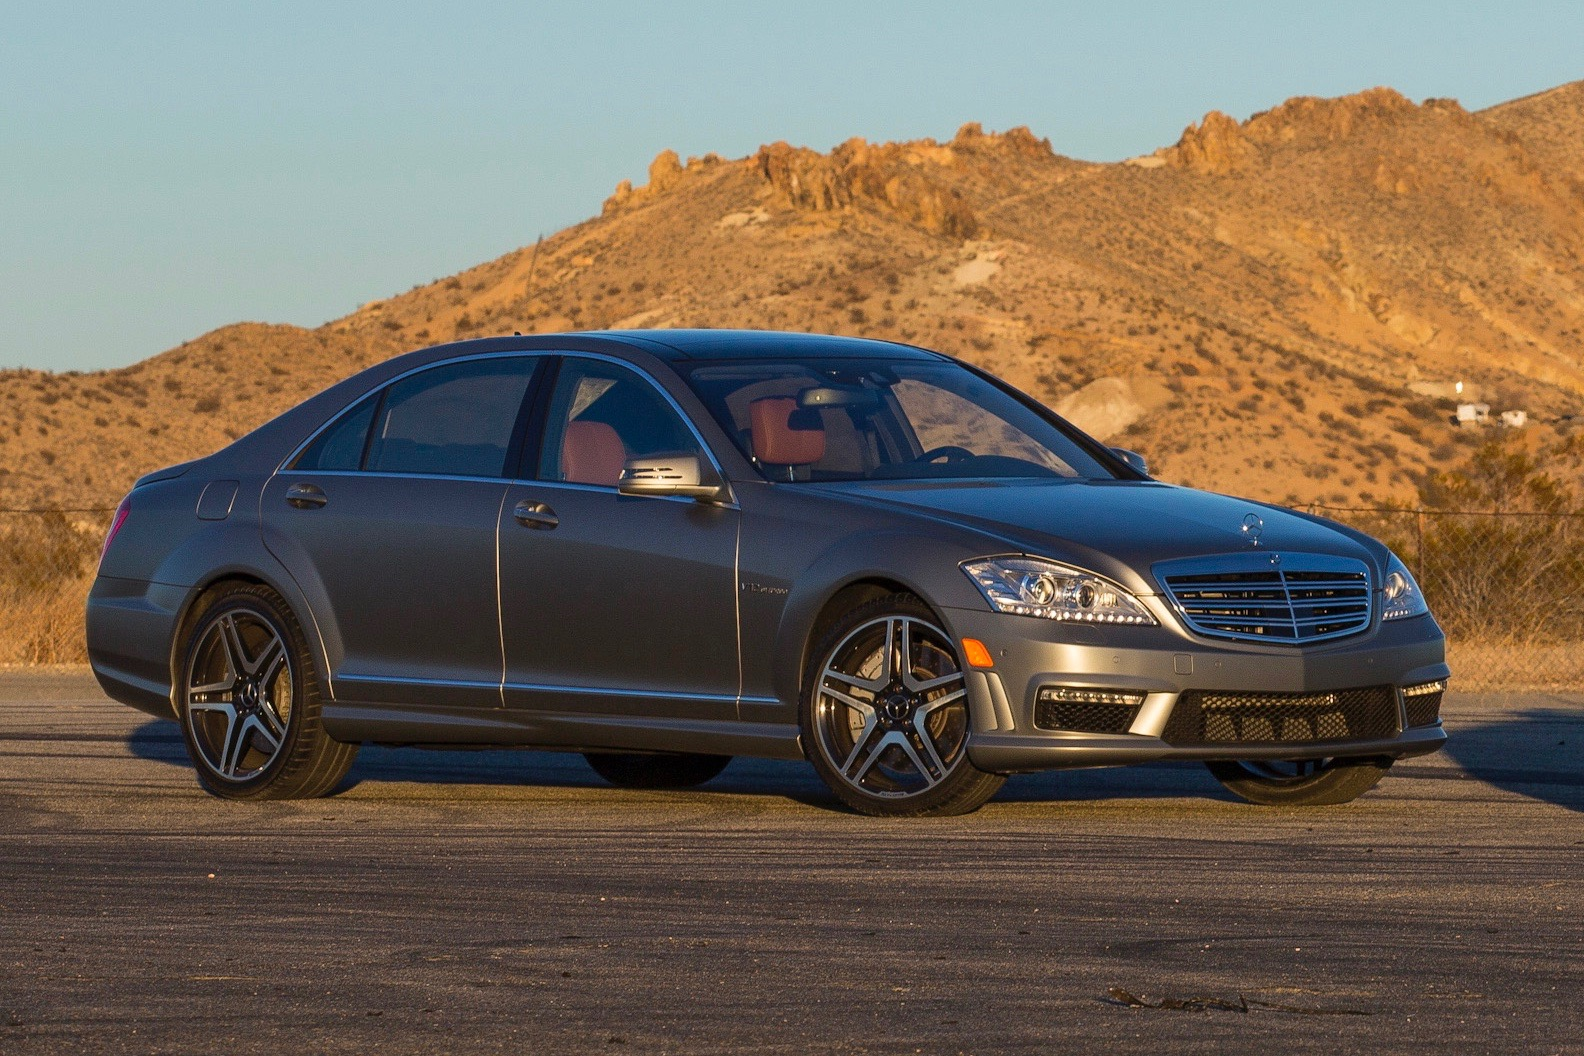 Find Affordable Luxury with These Used Flagship Sedans